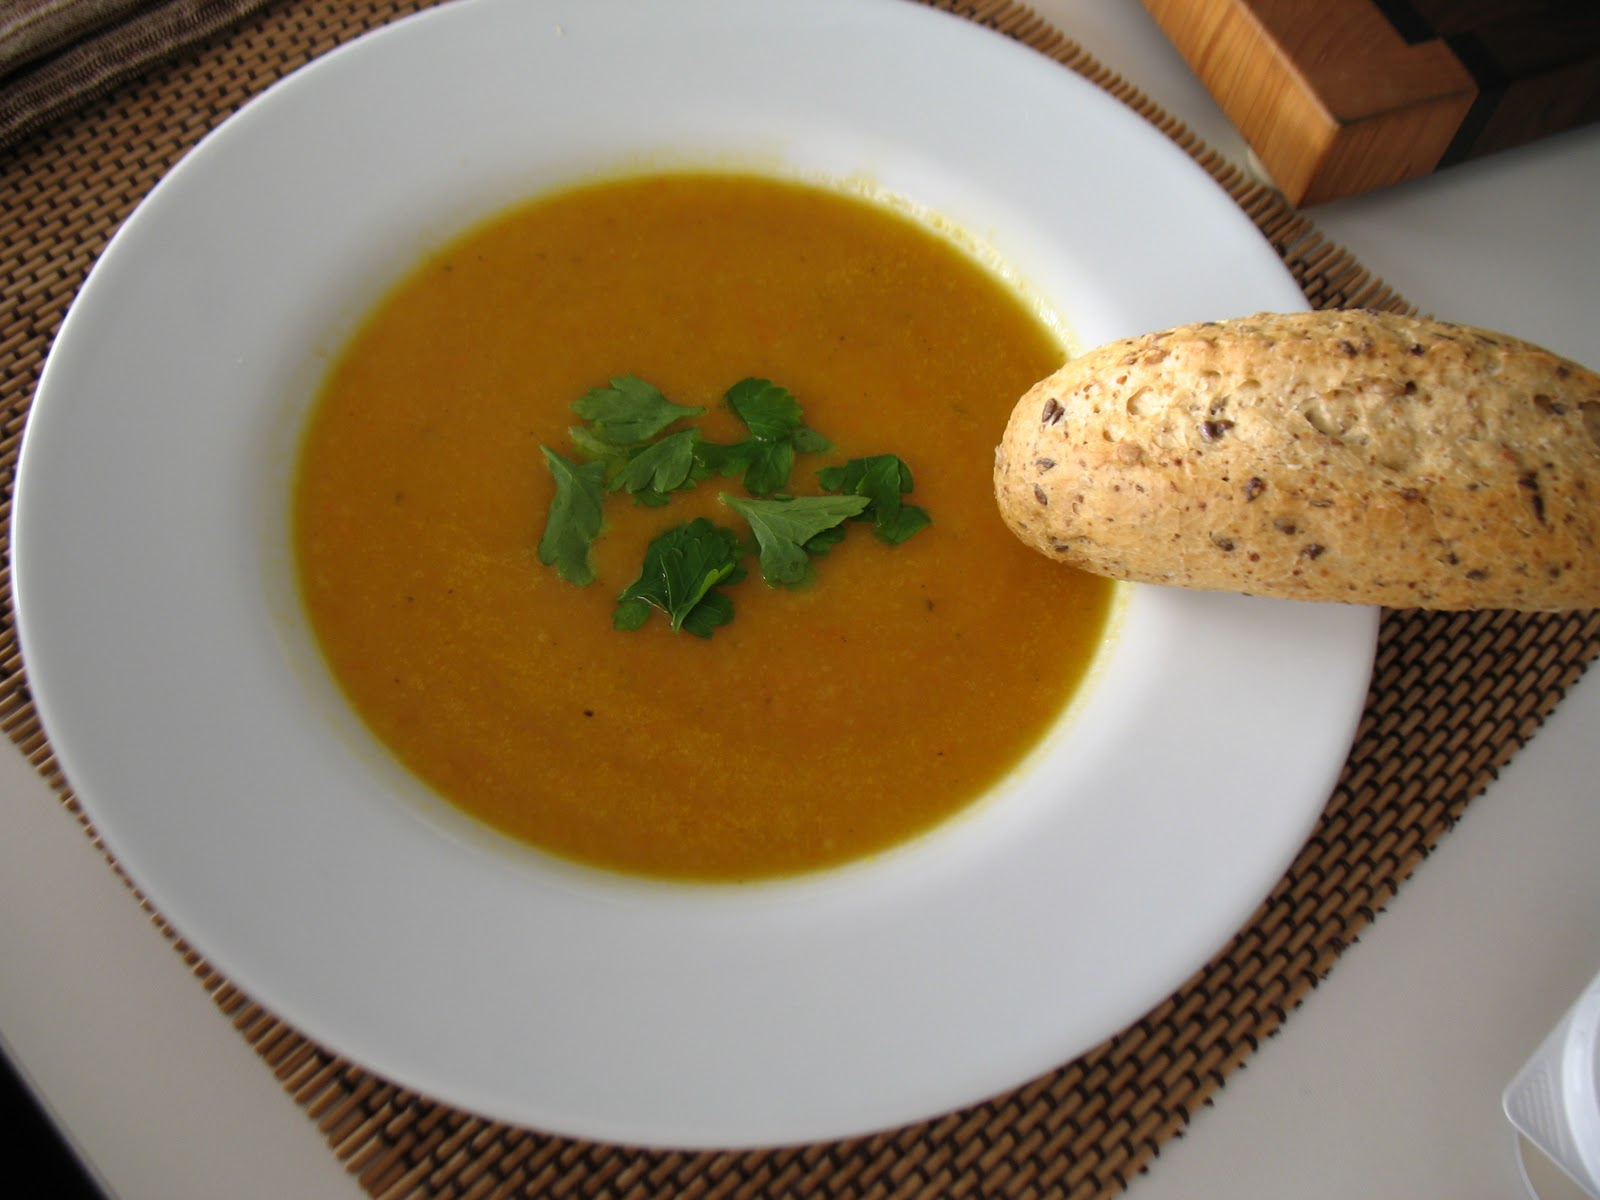 Courtney's Vegan Journal: Carrot, Apple, Ginger Soup